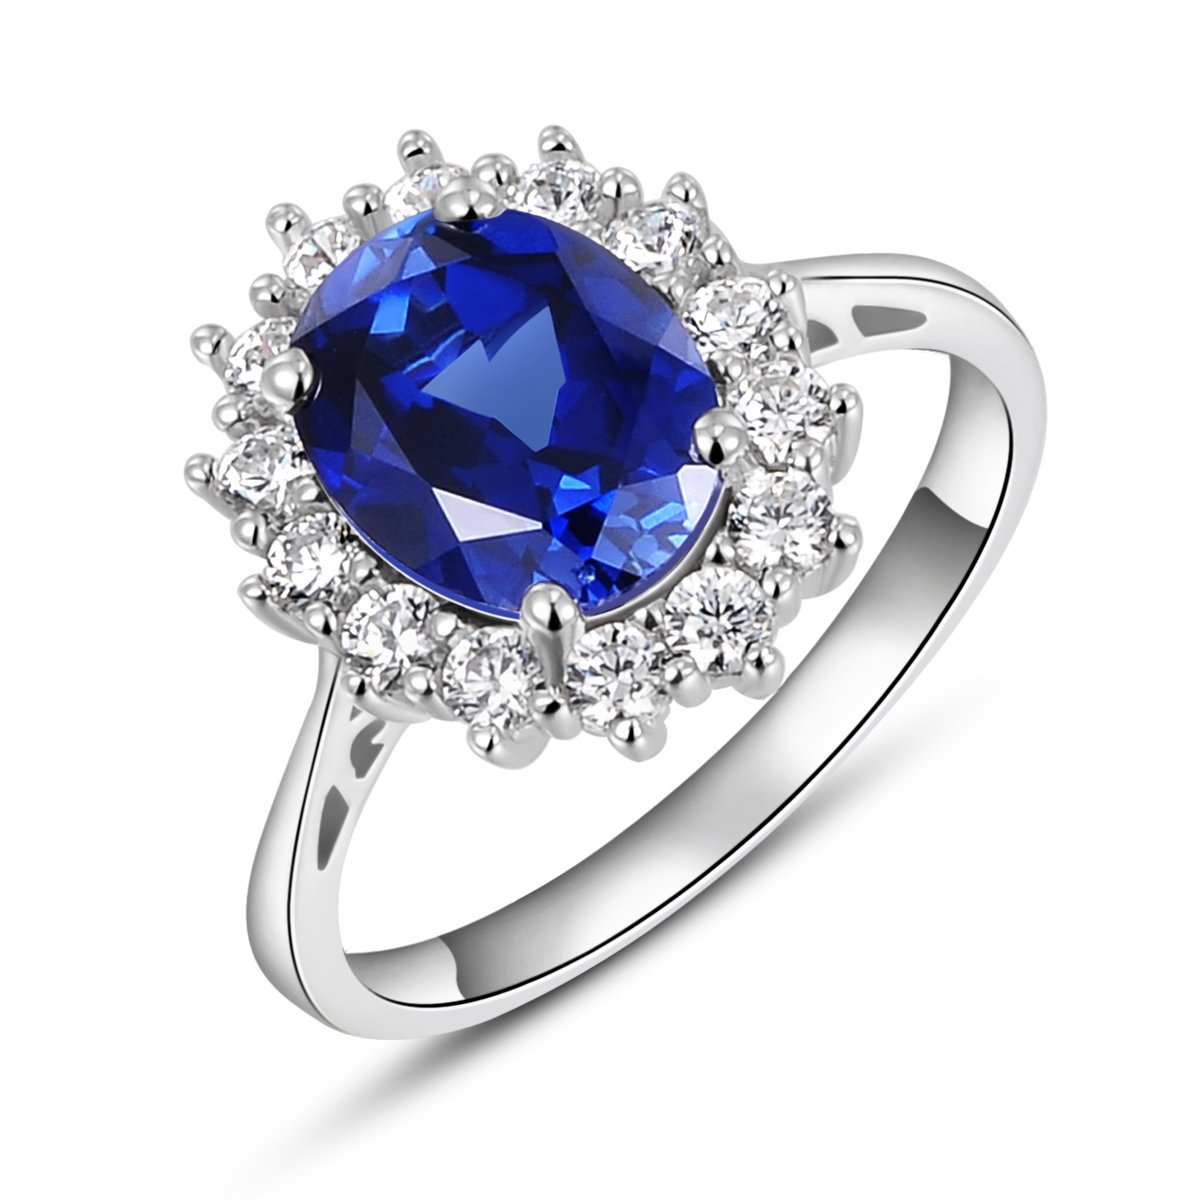 Solid Sterling Silver Kate Middleton's Engagement Ring with Simulated Sapphire Blue Gemstone Rings Newshe Jewellery ZRS01519